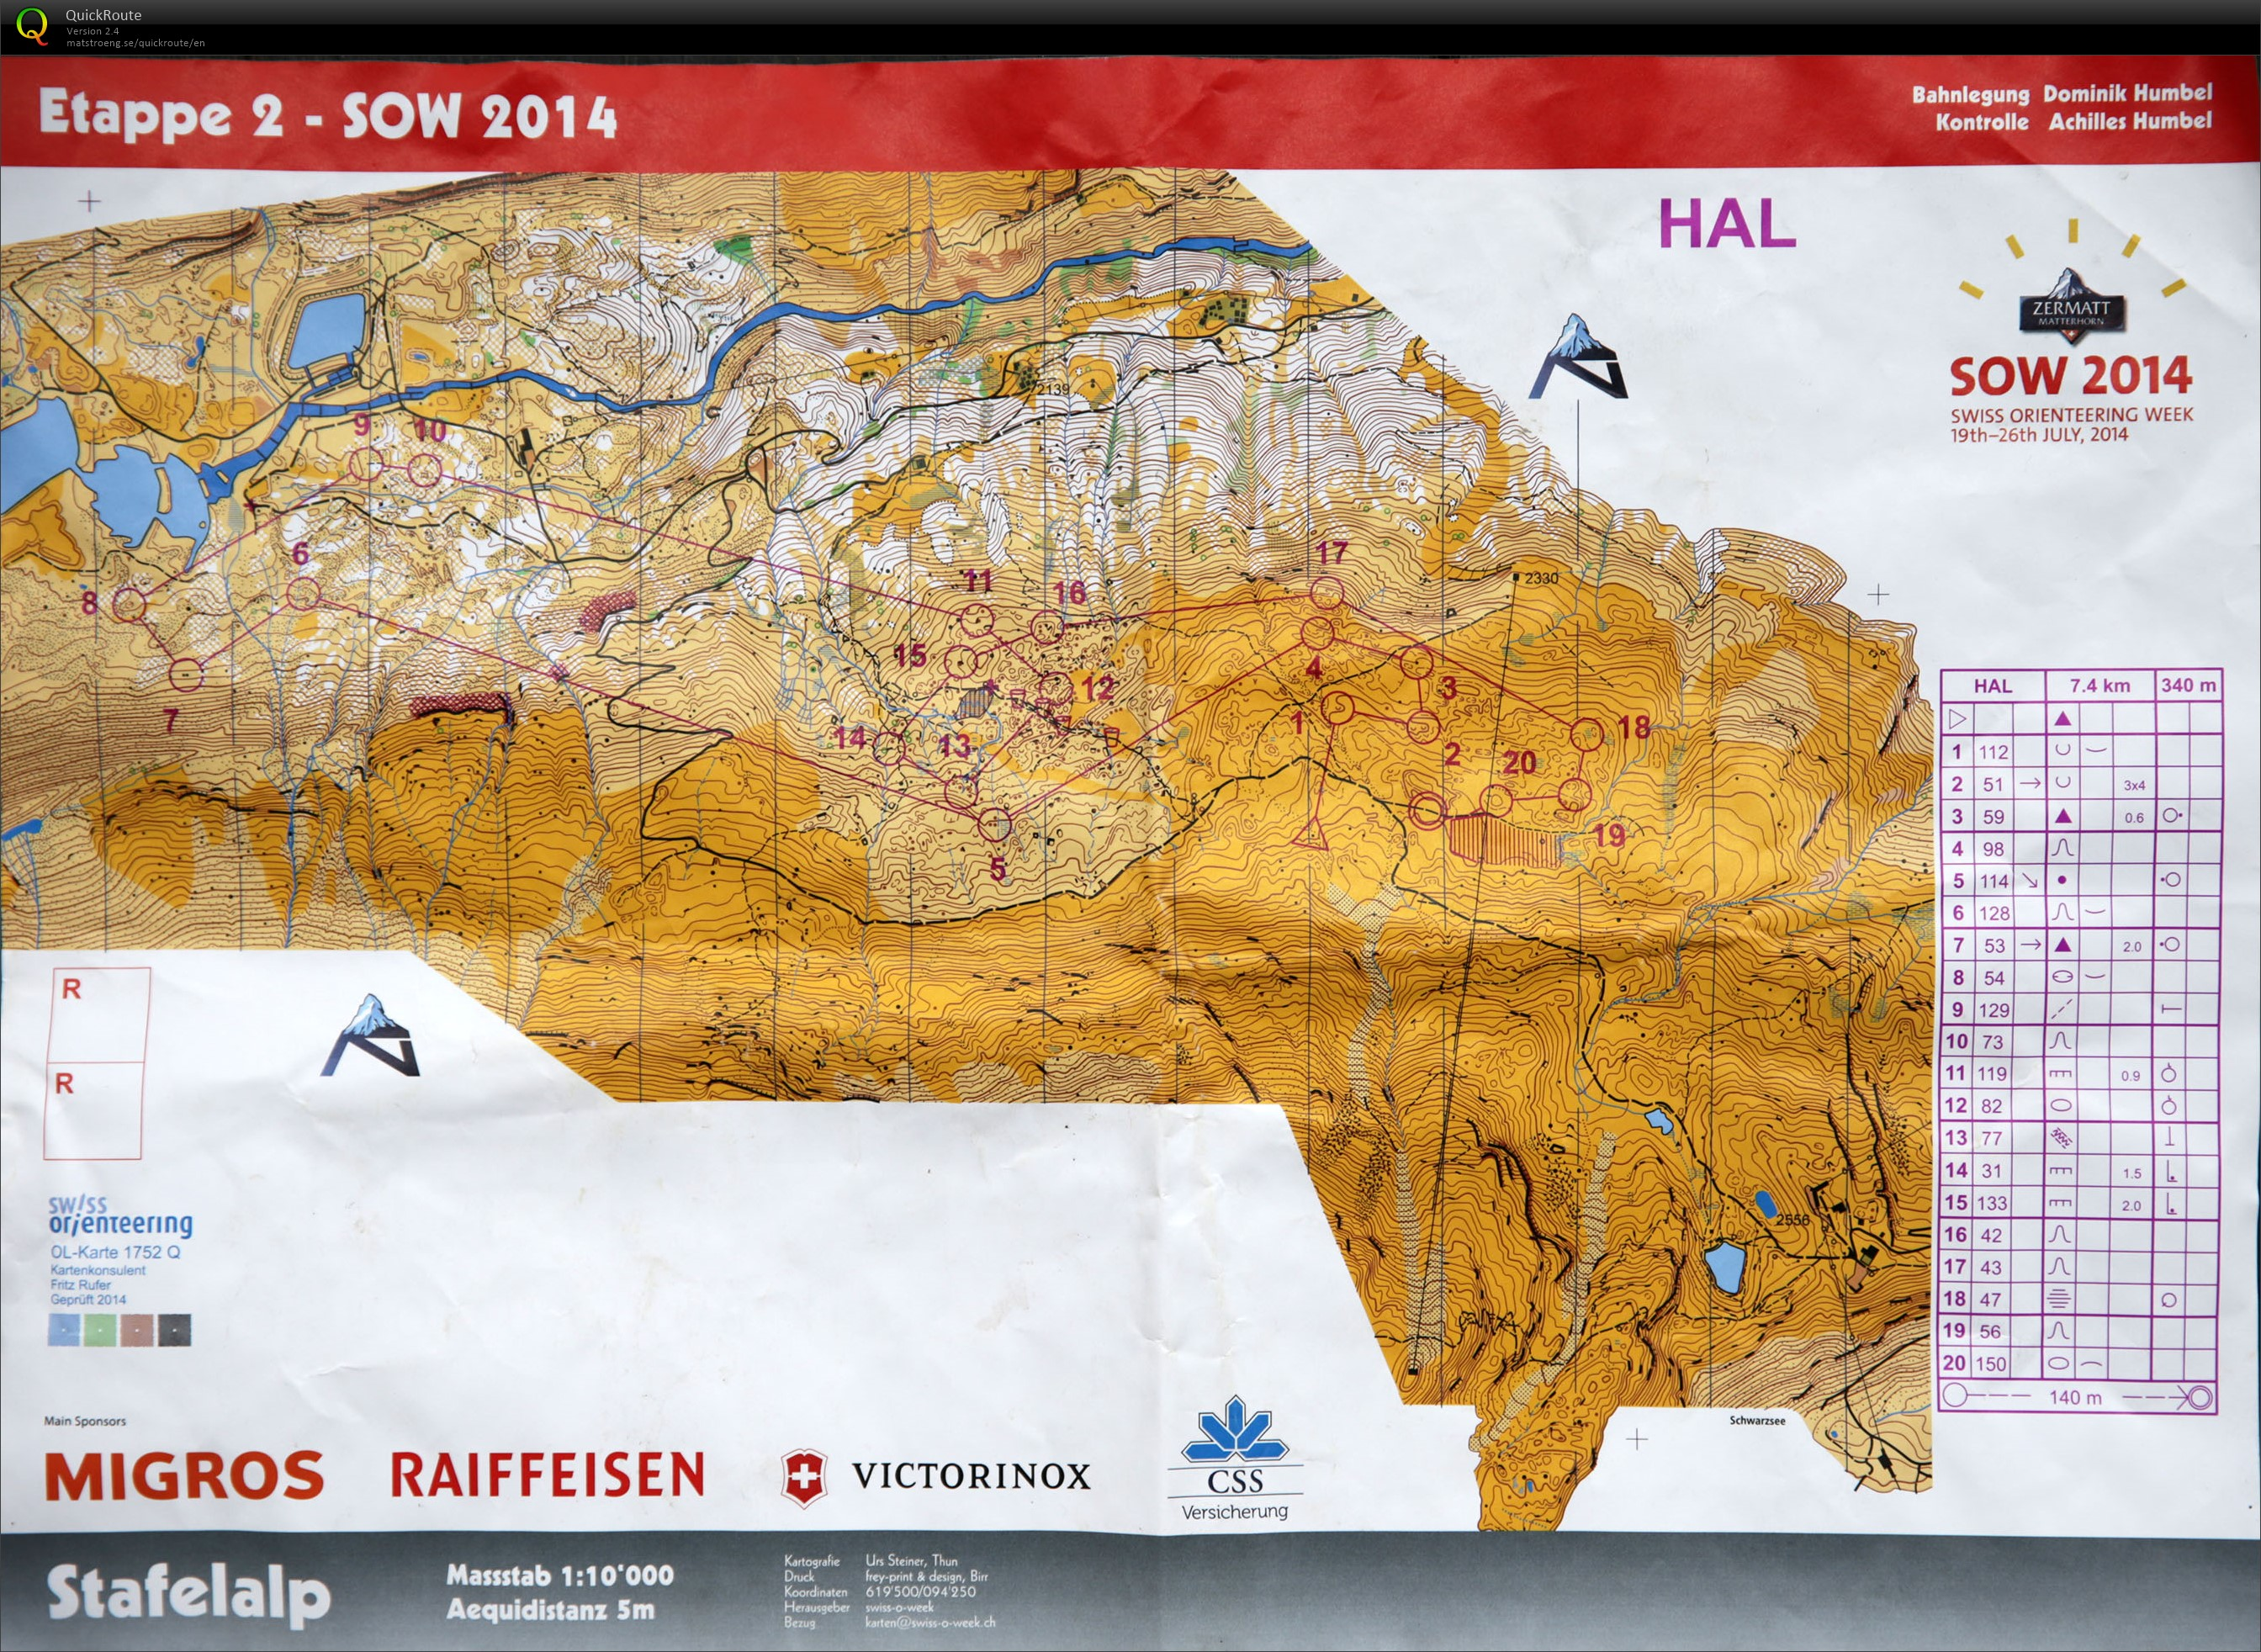 Swiss Orienteering Week 2014, day 2 (21/07/2014)